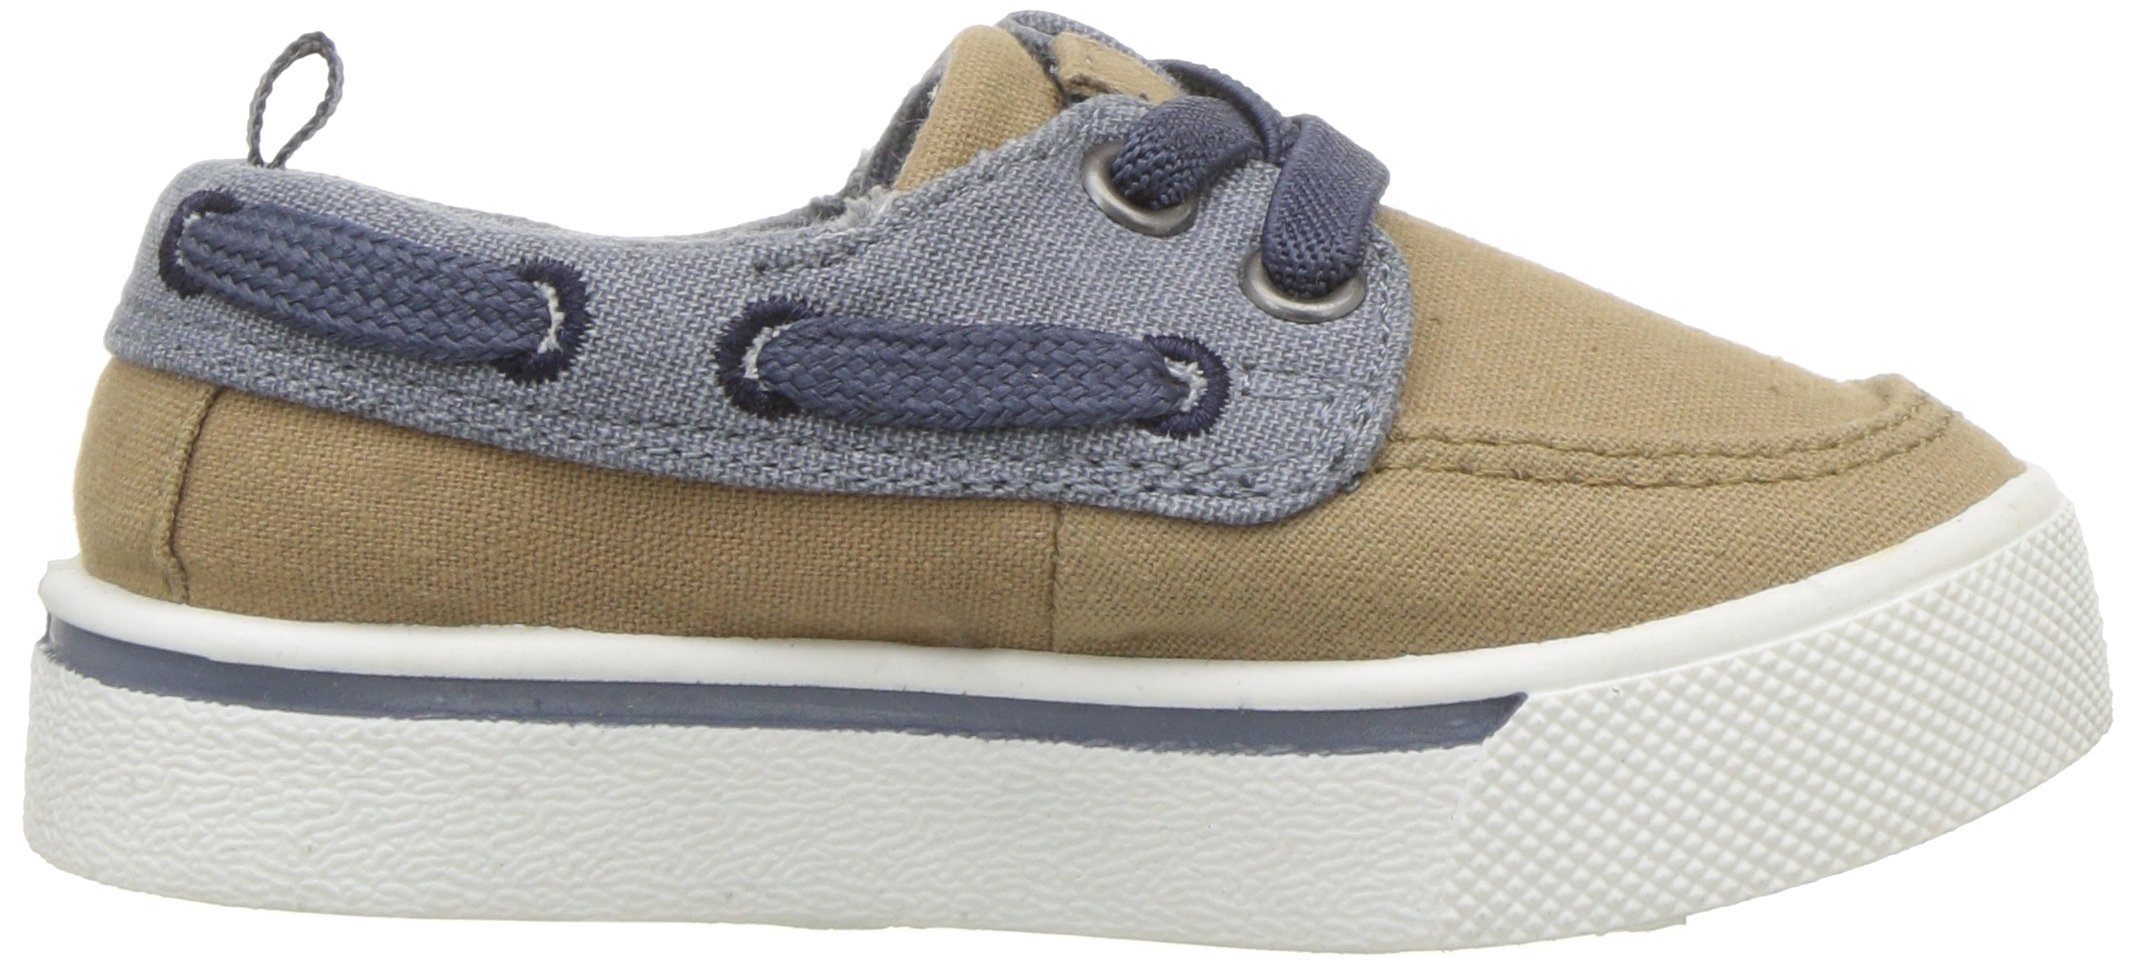 OshKosh B'Gosh Albie Boy's Boat Shoe, Khaki, 12 M US Little Kid by OshKosh B'Gosh (Image #7)